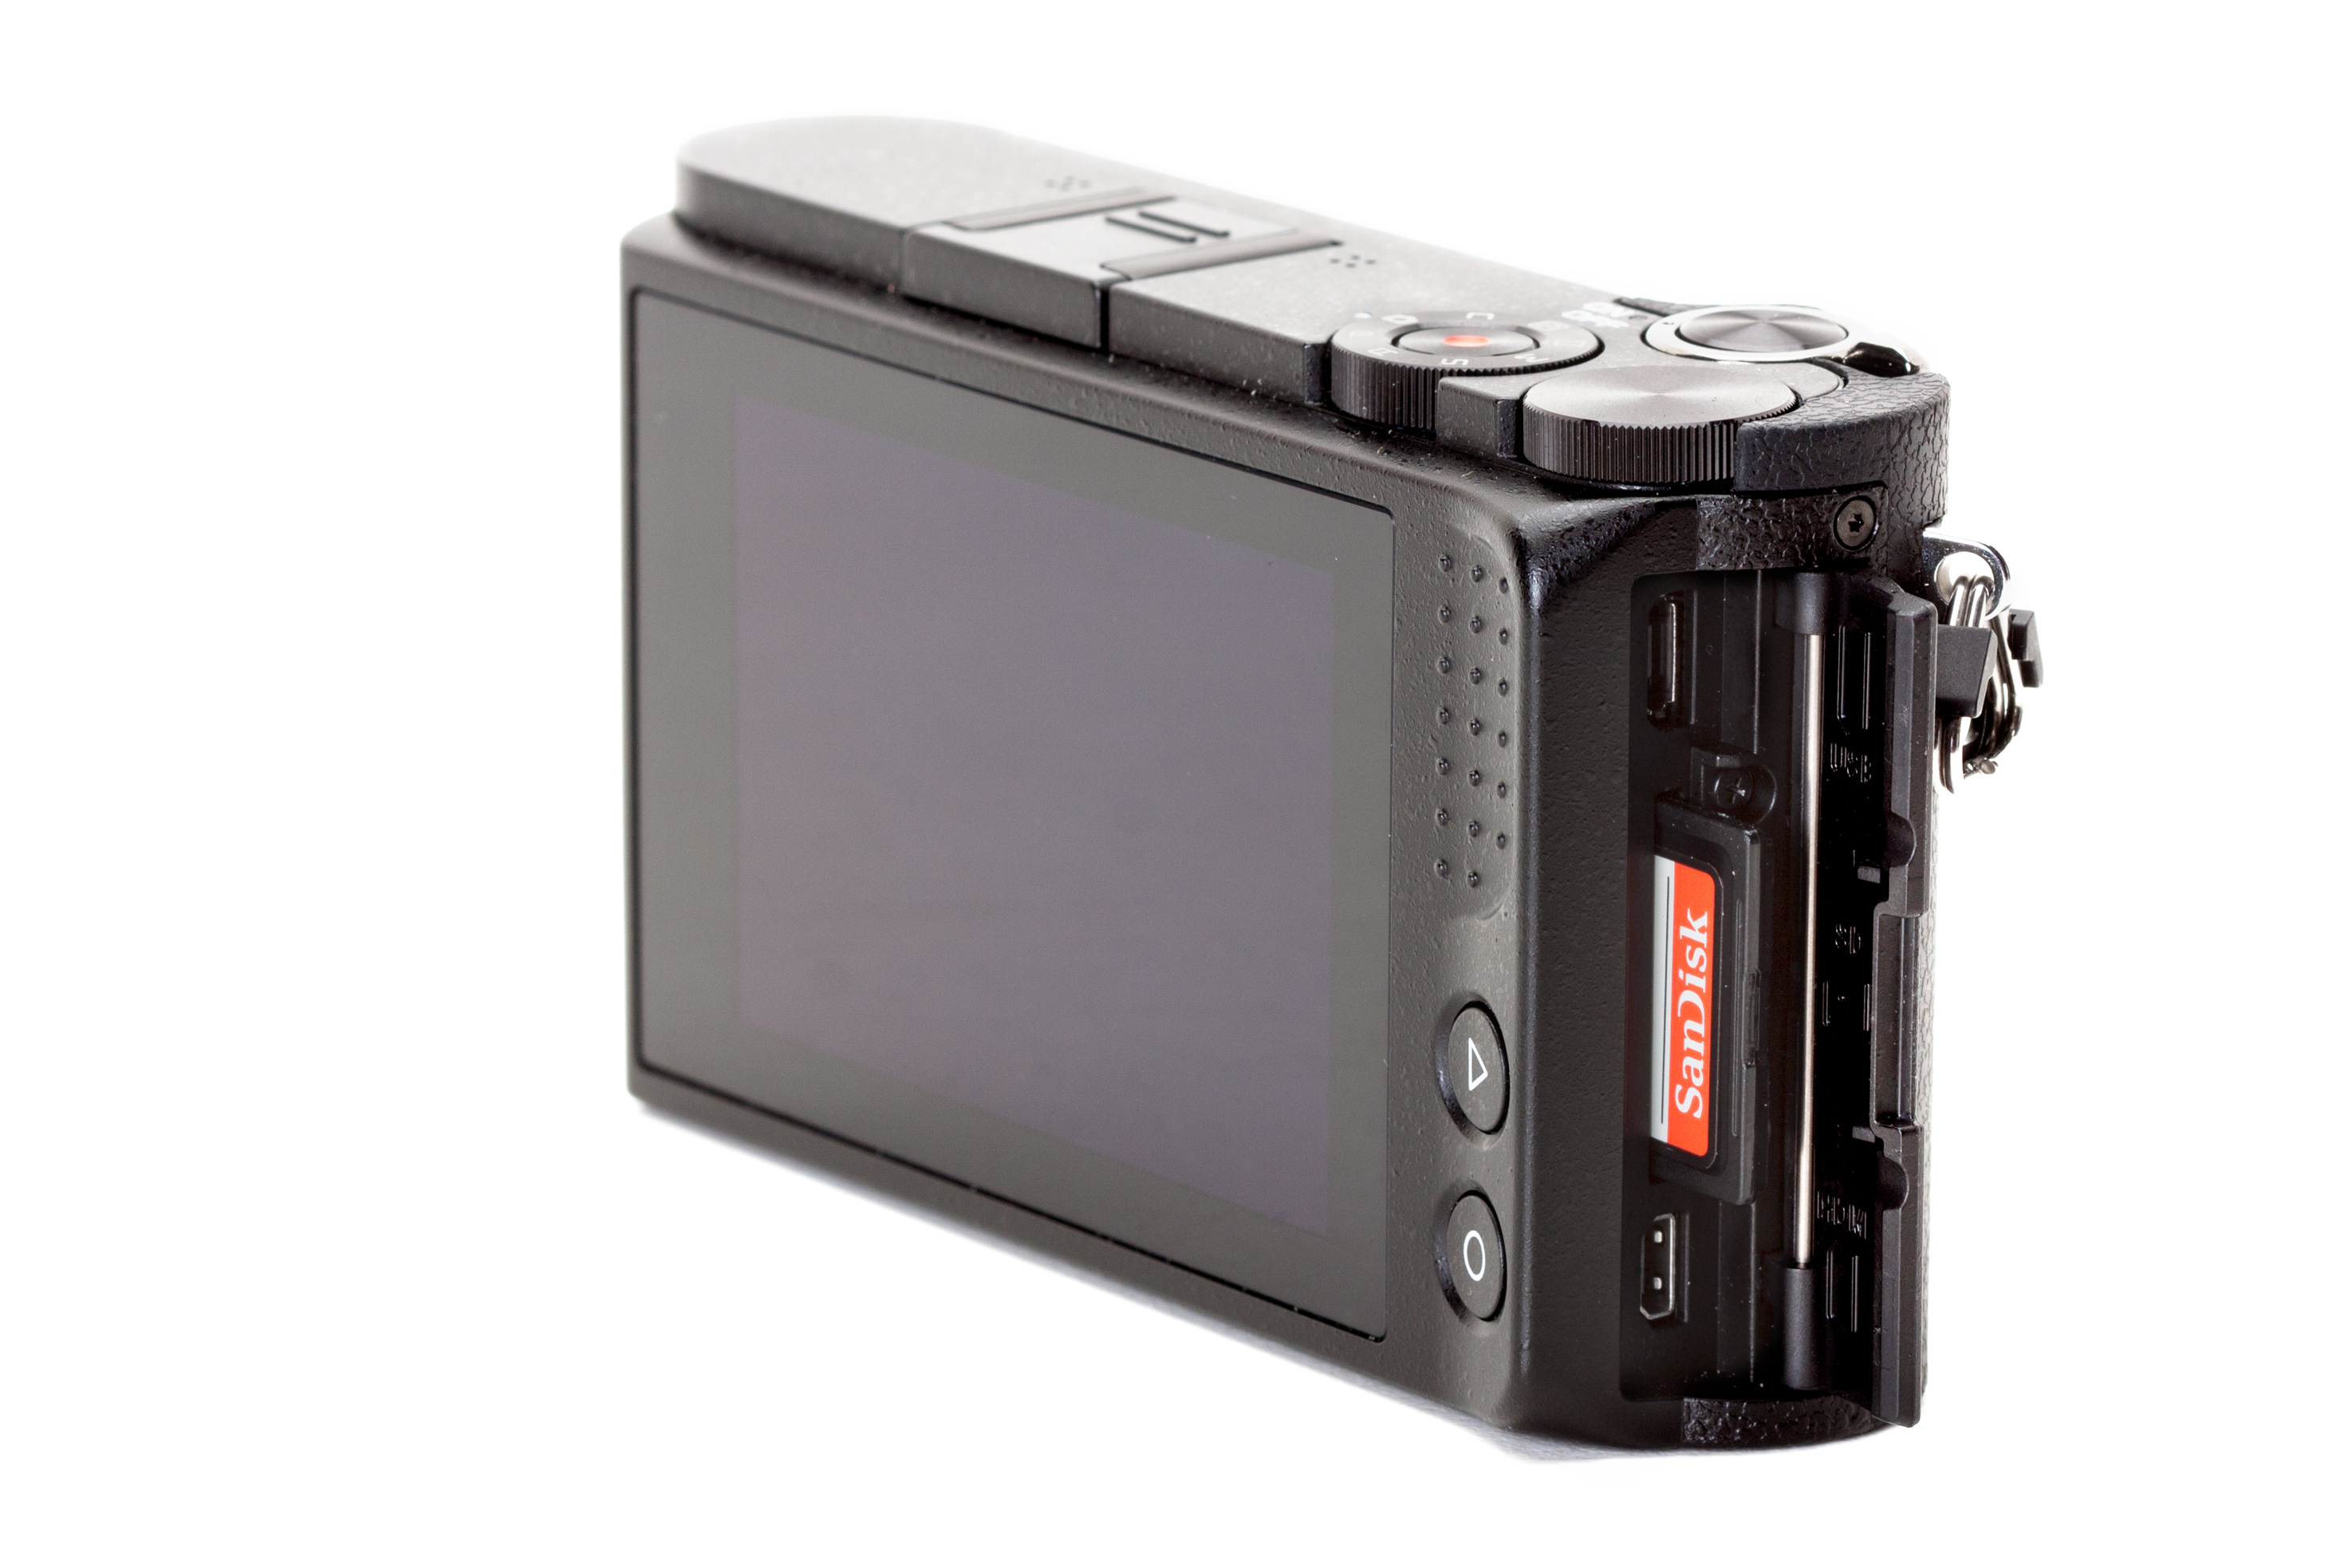 The camera's Micro-USB and Micro-HDMI ports can be accessed via the memory card slot door, and the camera utilizes SD/SDHC/SDXC format storage cards.